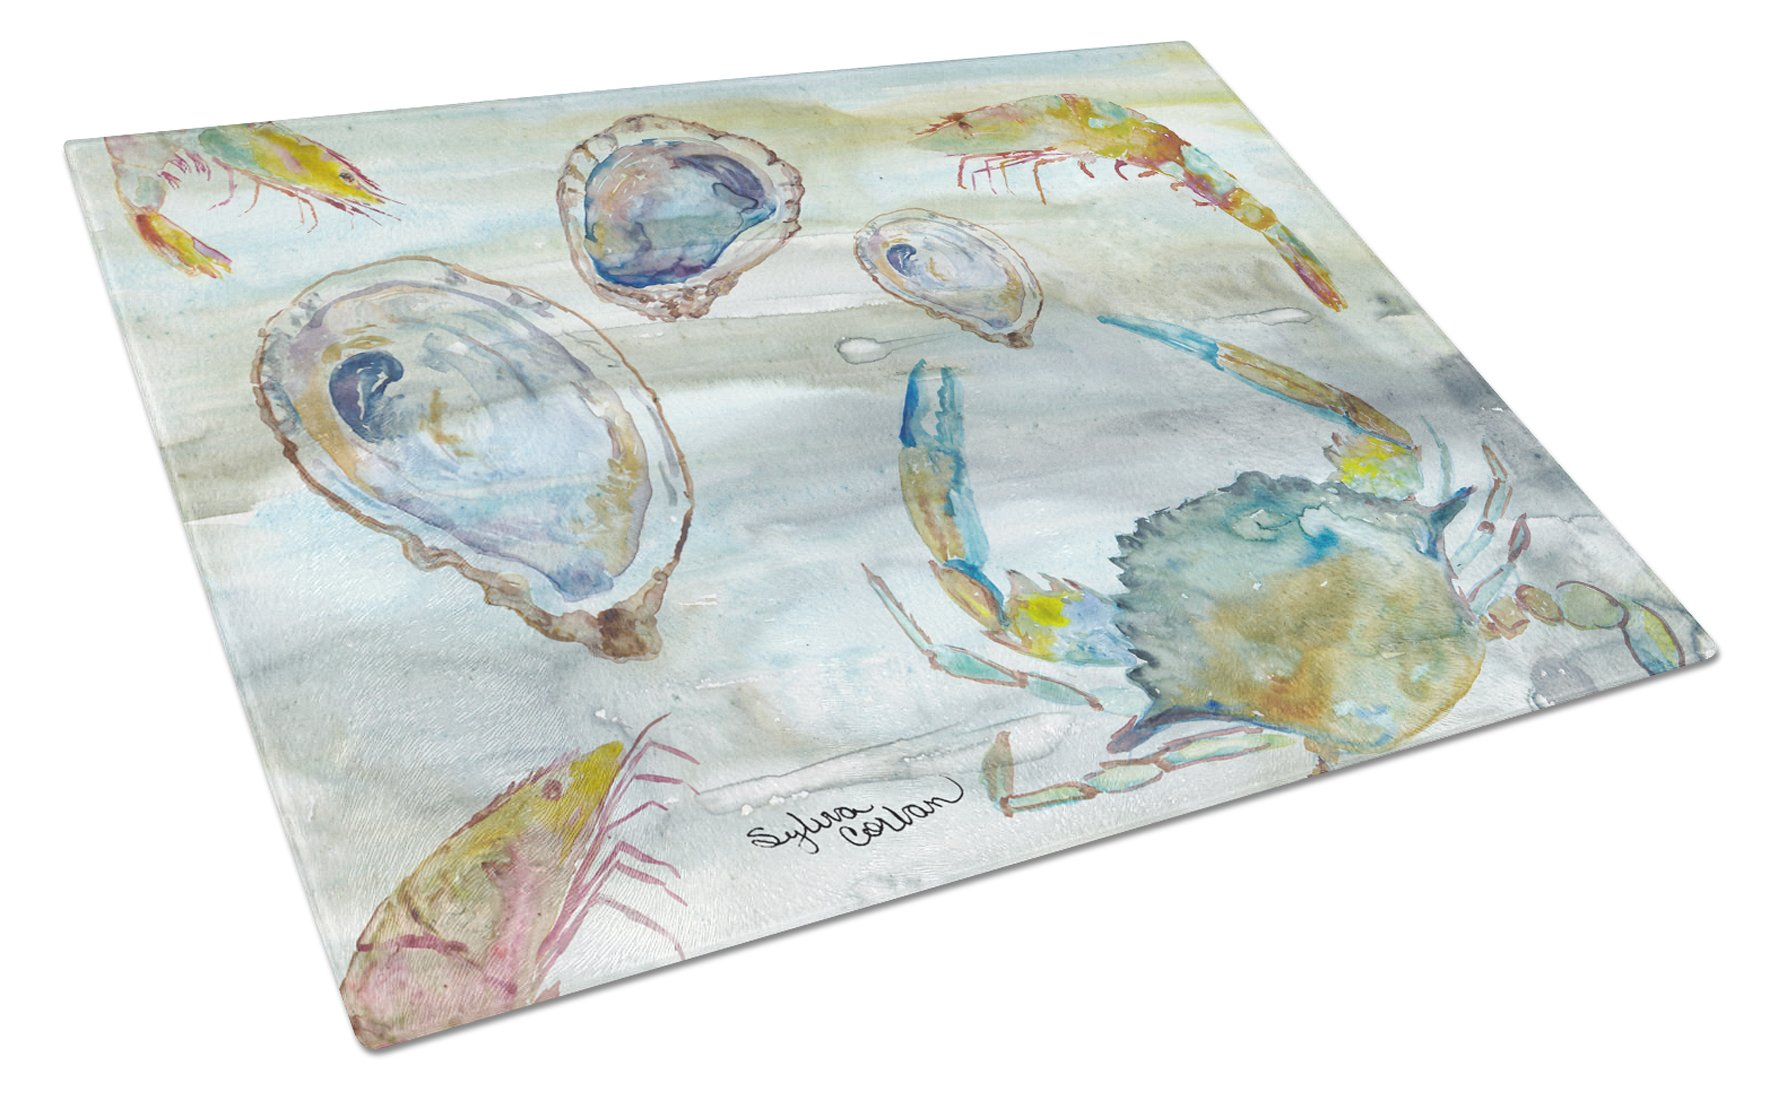 Crab, Shrimp and Oyster Watercolor Glass Cutting Board Large SC2010LCB by Caroline's Treasures